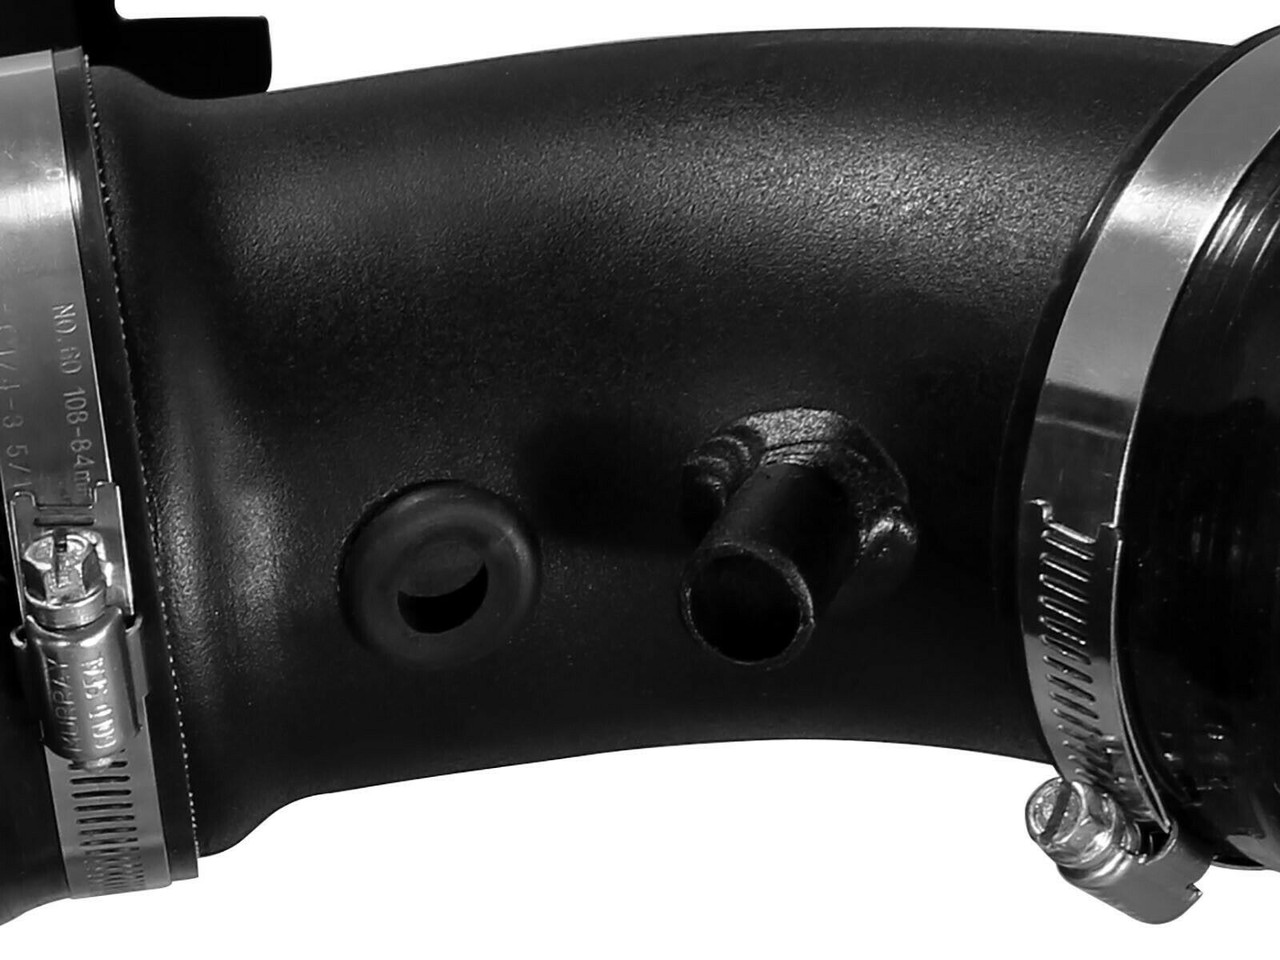 AFE AIR INTAKE FOR 2012-2019 JEEP GRAND CHEROKEE 6.4L SRT DODGE DURANGO 51-12662